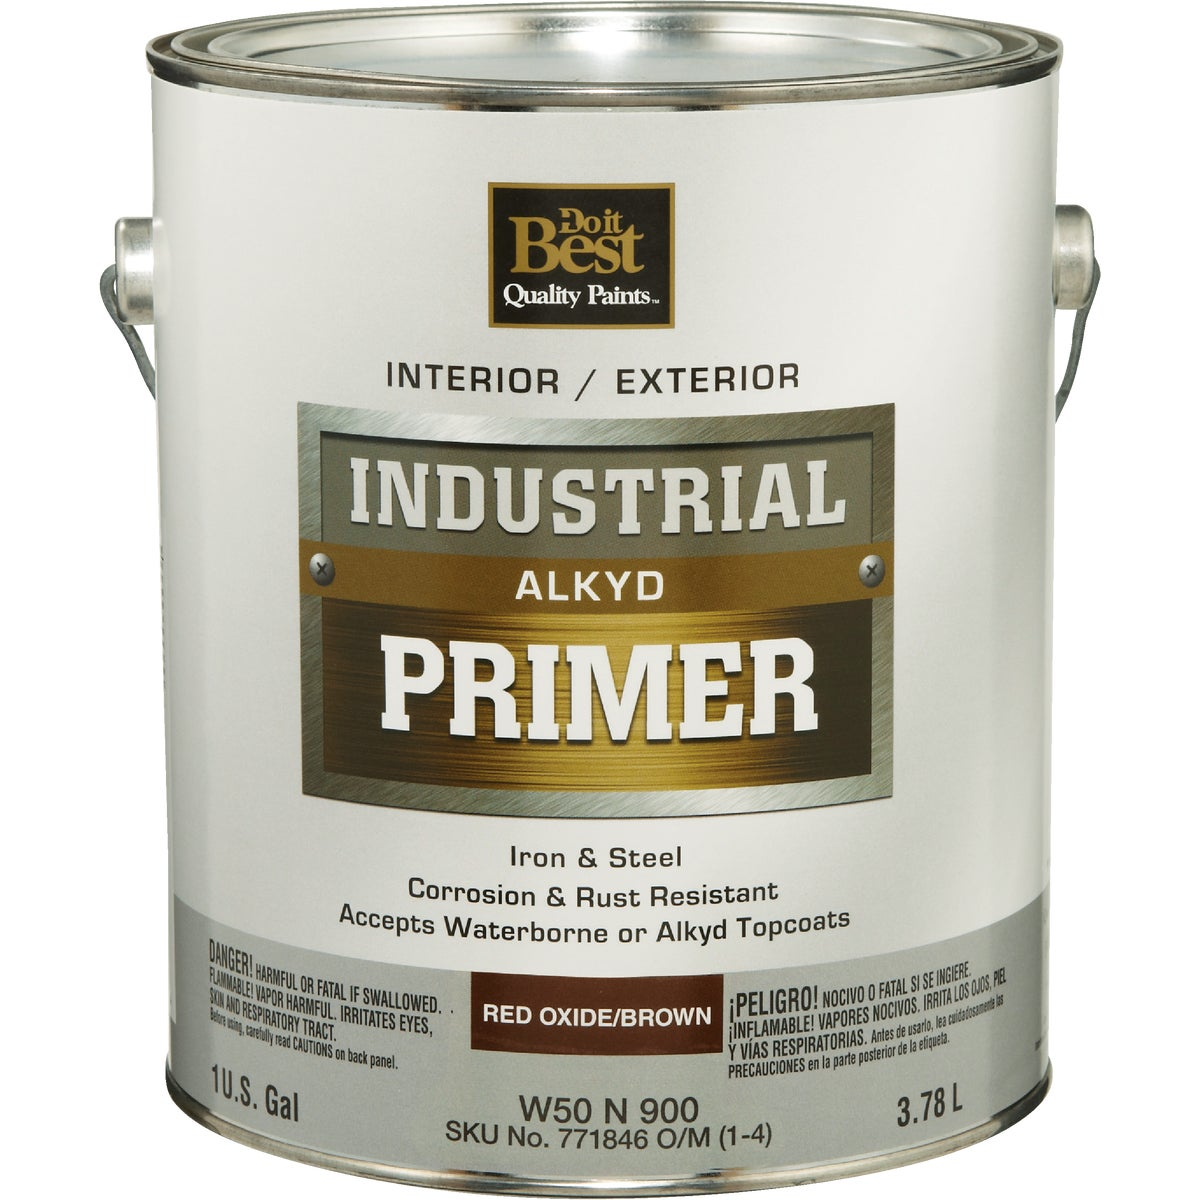 INT/EXT BRN ALKYD PRIMER - W50N00900-16 by Do it Best